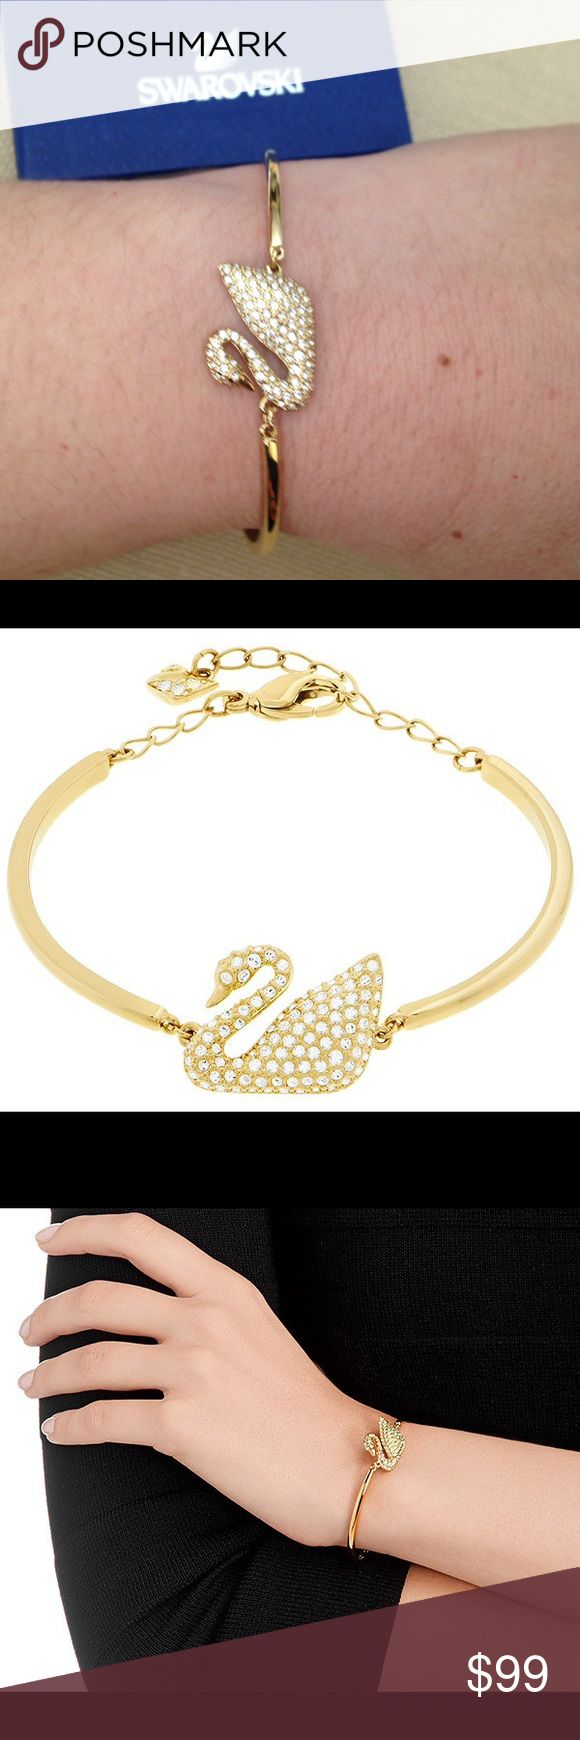 SWAROVSKI Swan Bangle Swan Bangle This refined and timeless gold-plated bracelet boasts the iconic symbol of Swarovski: a beautiful swan sparkling in clear crystal pavé. Easy to wear, this sophisticated creation suits any outfit at any time of the day.  Size: 5 7/8 inches Swarovski Jewelry Bracelets